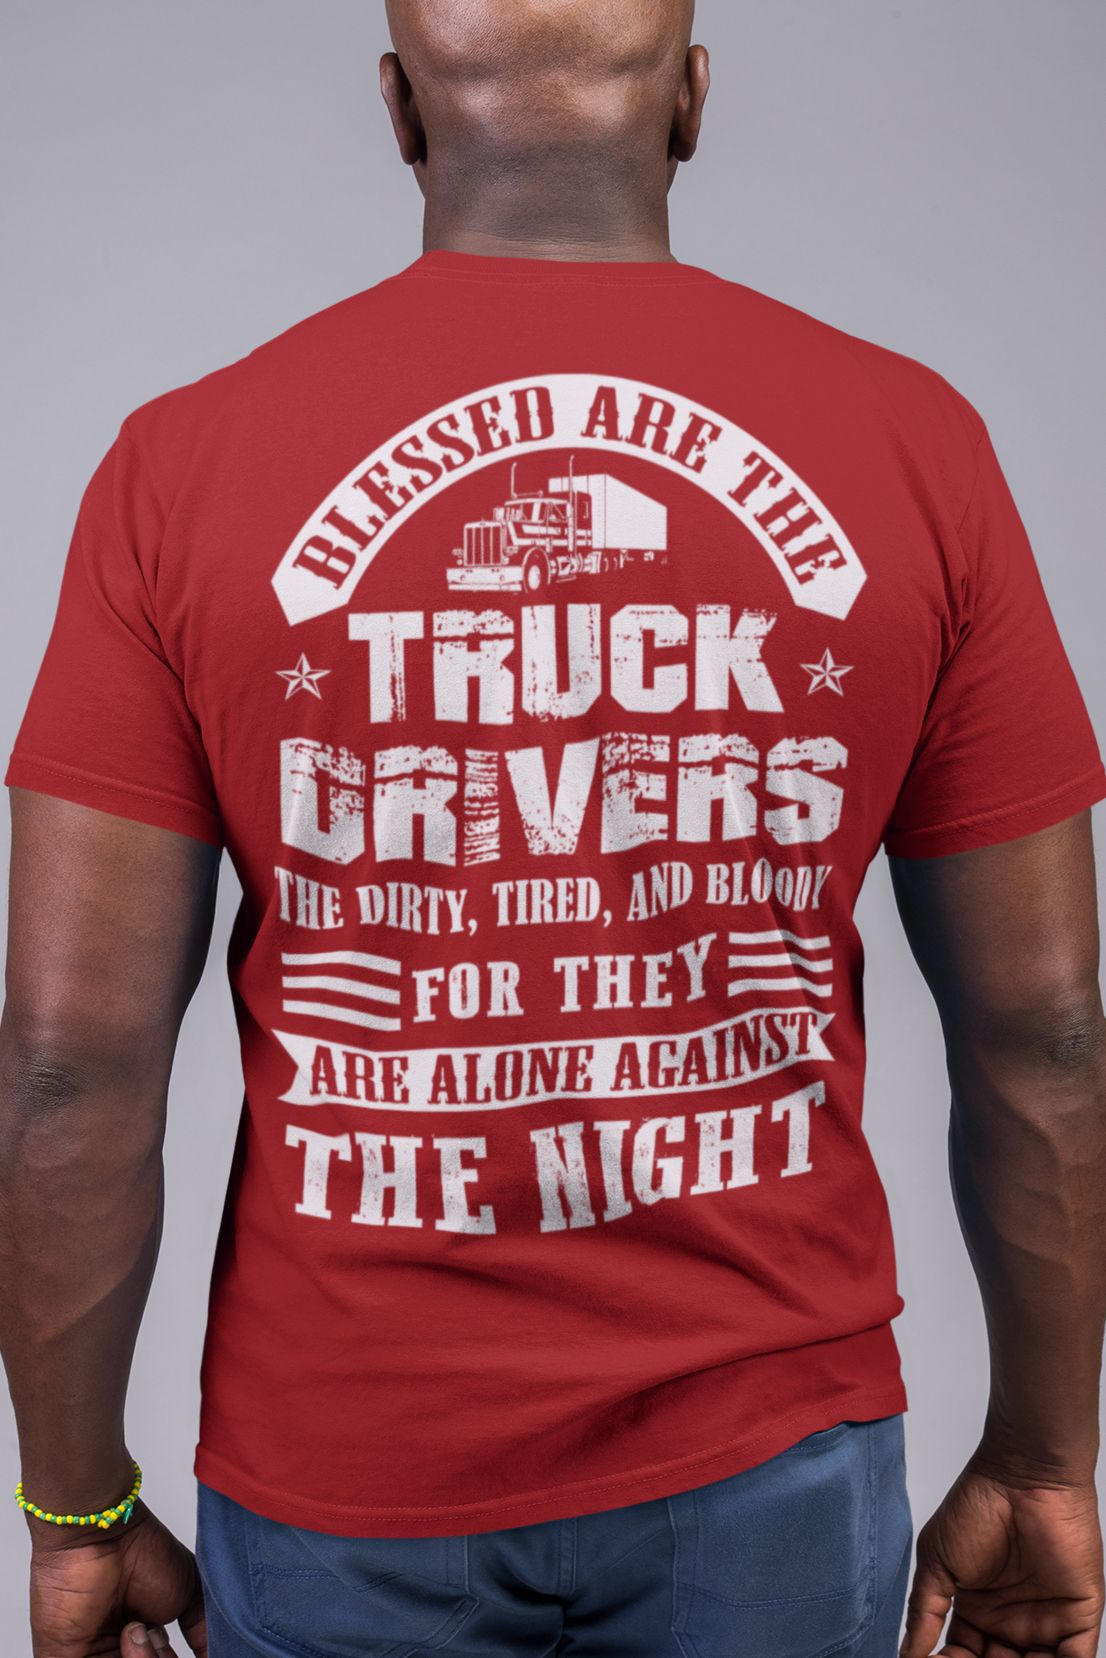 Truck Driver Truck Driver Gift Design available on Tee